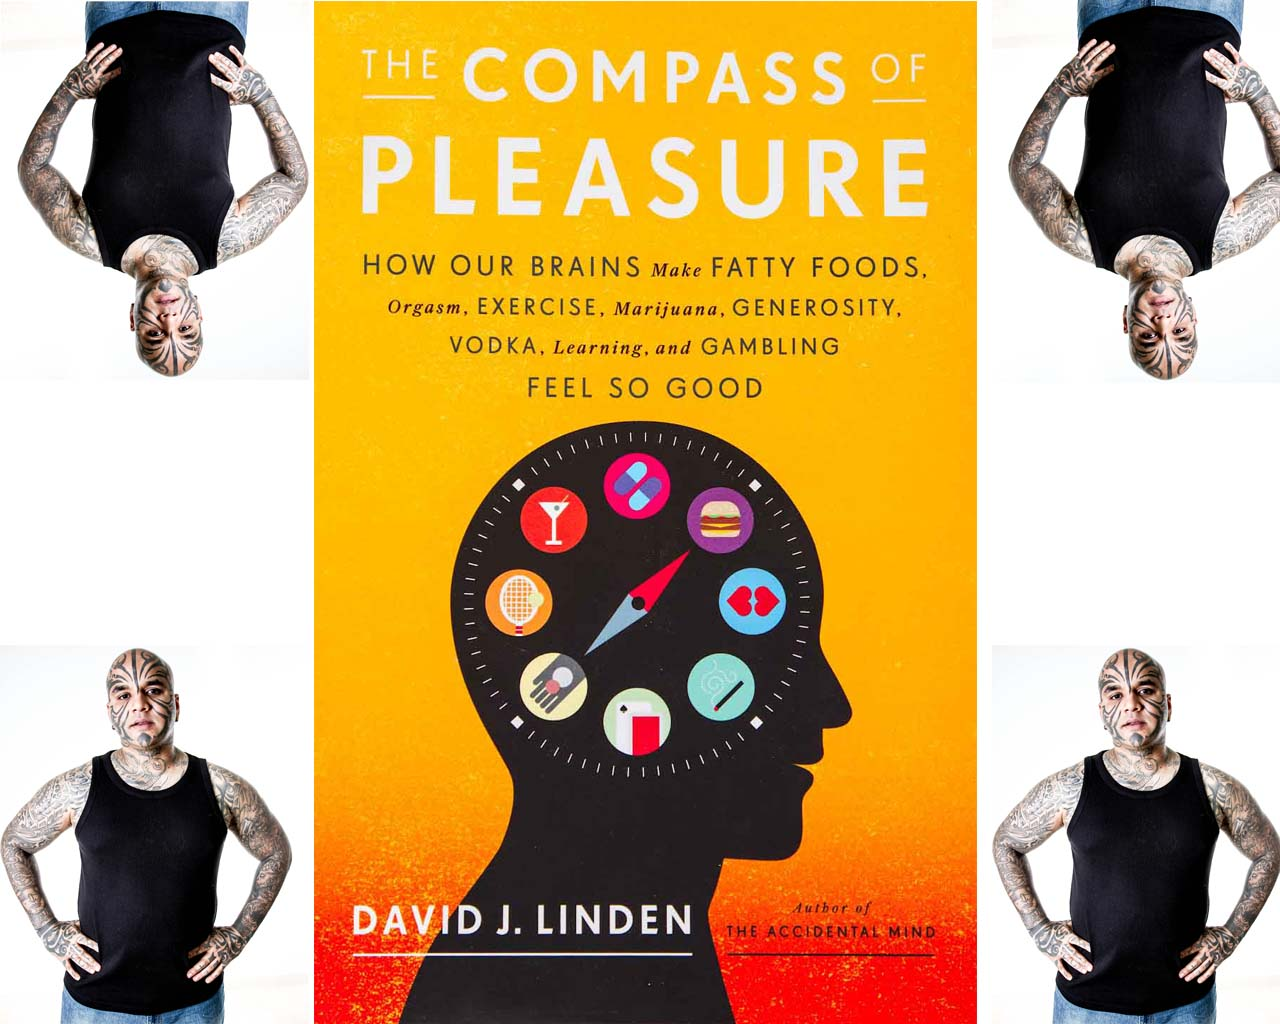 """the compass of pleasure by david j linden Praise for the compass of pleasure """"in his book the compass of pleasure, the johns hopkins neurobiologist david j linden explicates the workings of [the regions of the brain] known collectively as the reward system, elegantly drawing on sources ranging from personal experience to studies of brain activity to experiments with molecules and genes""""."""